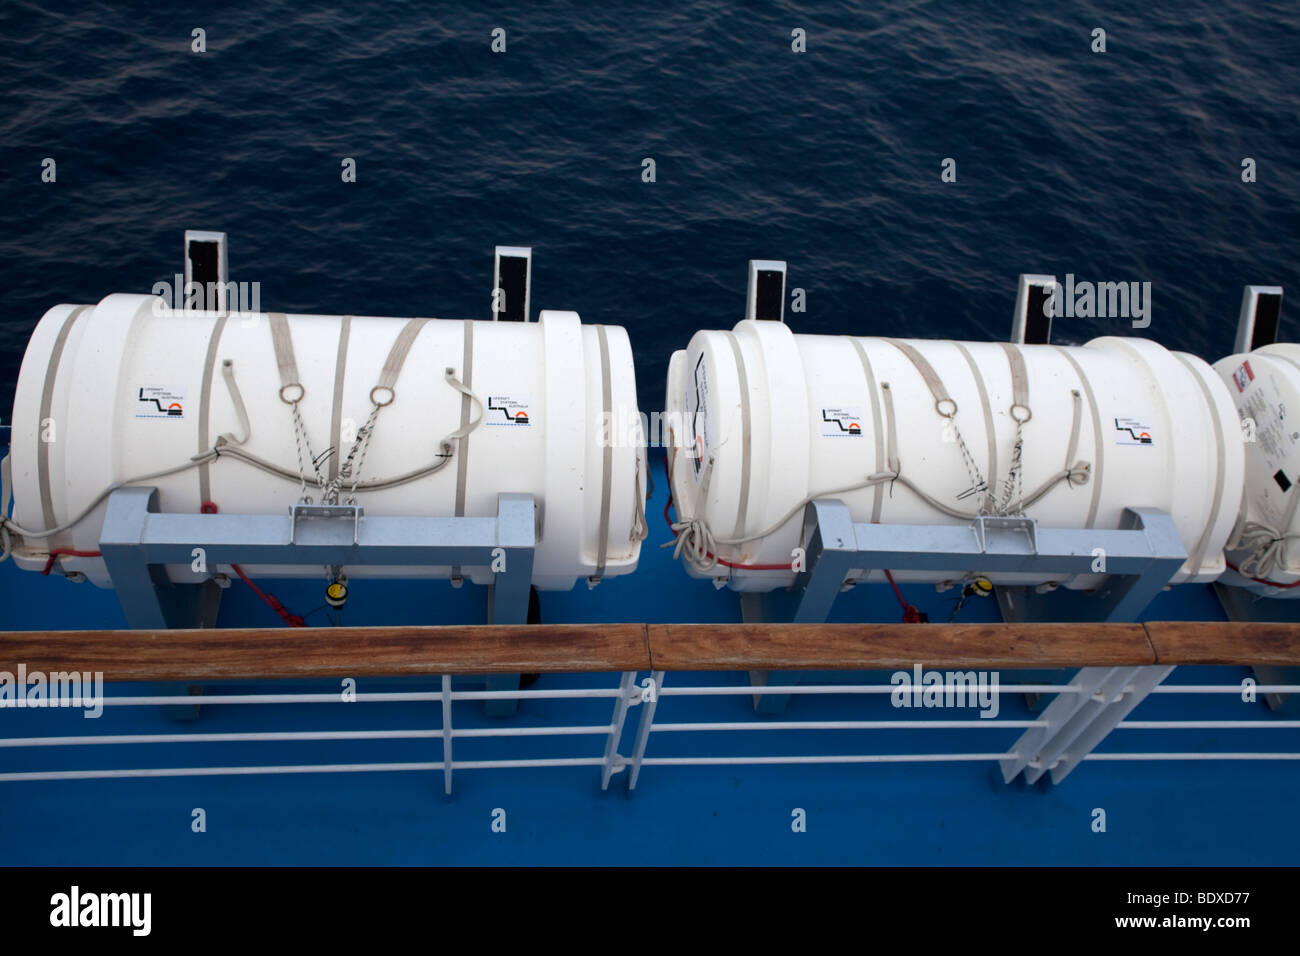 lifeboats on a ferryboat,Greece - Stock Image